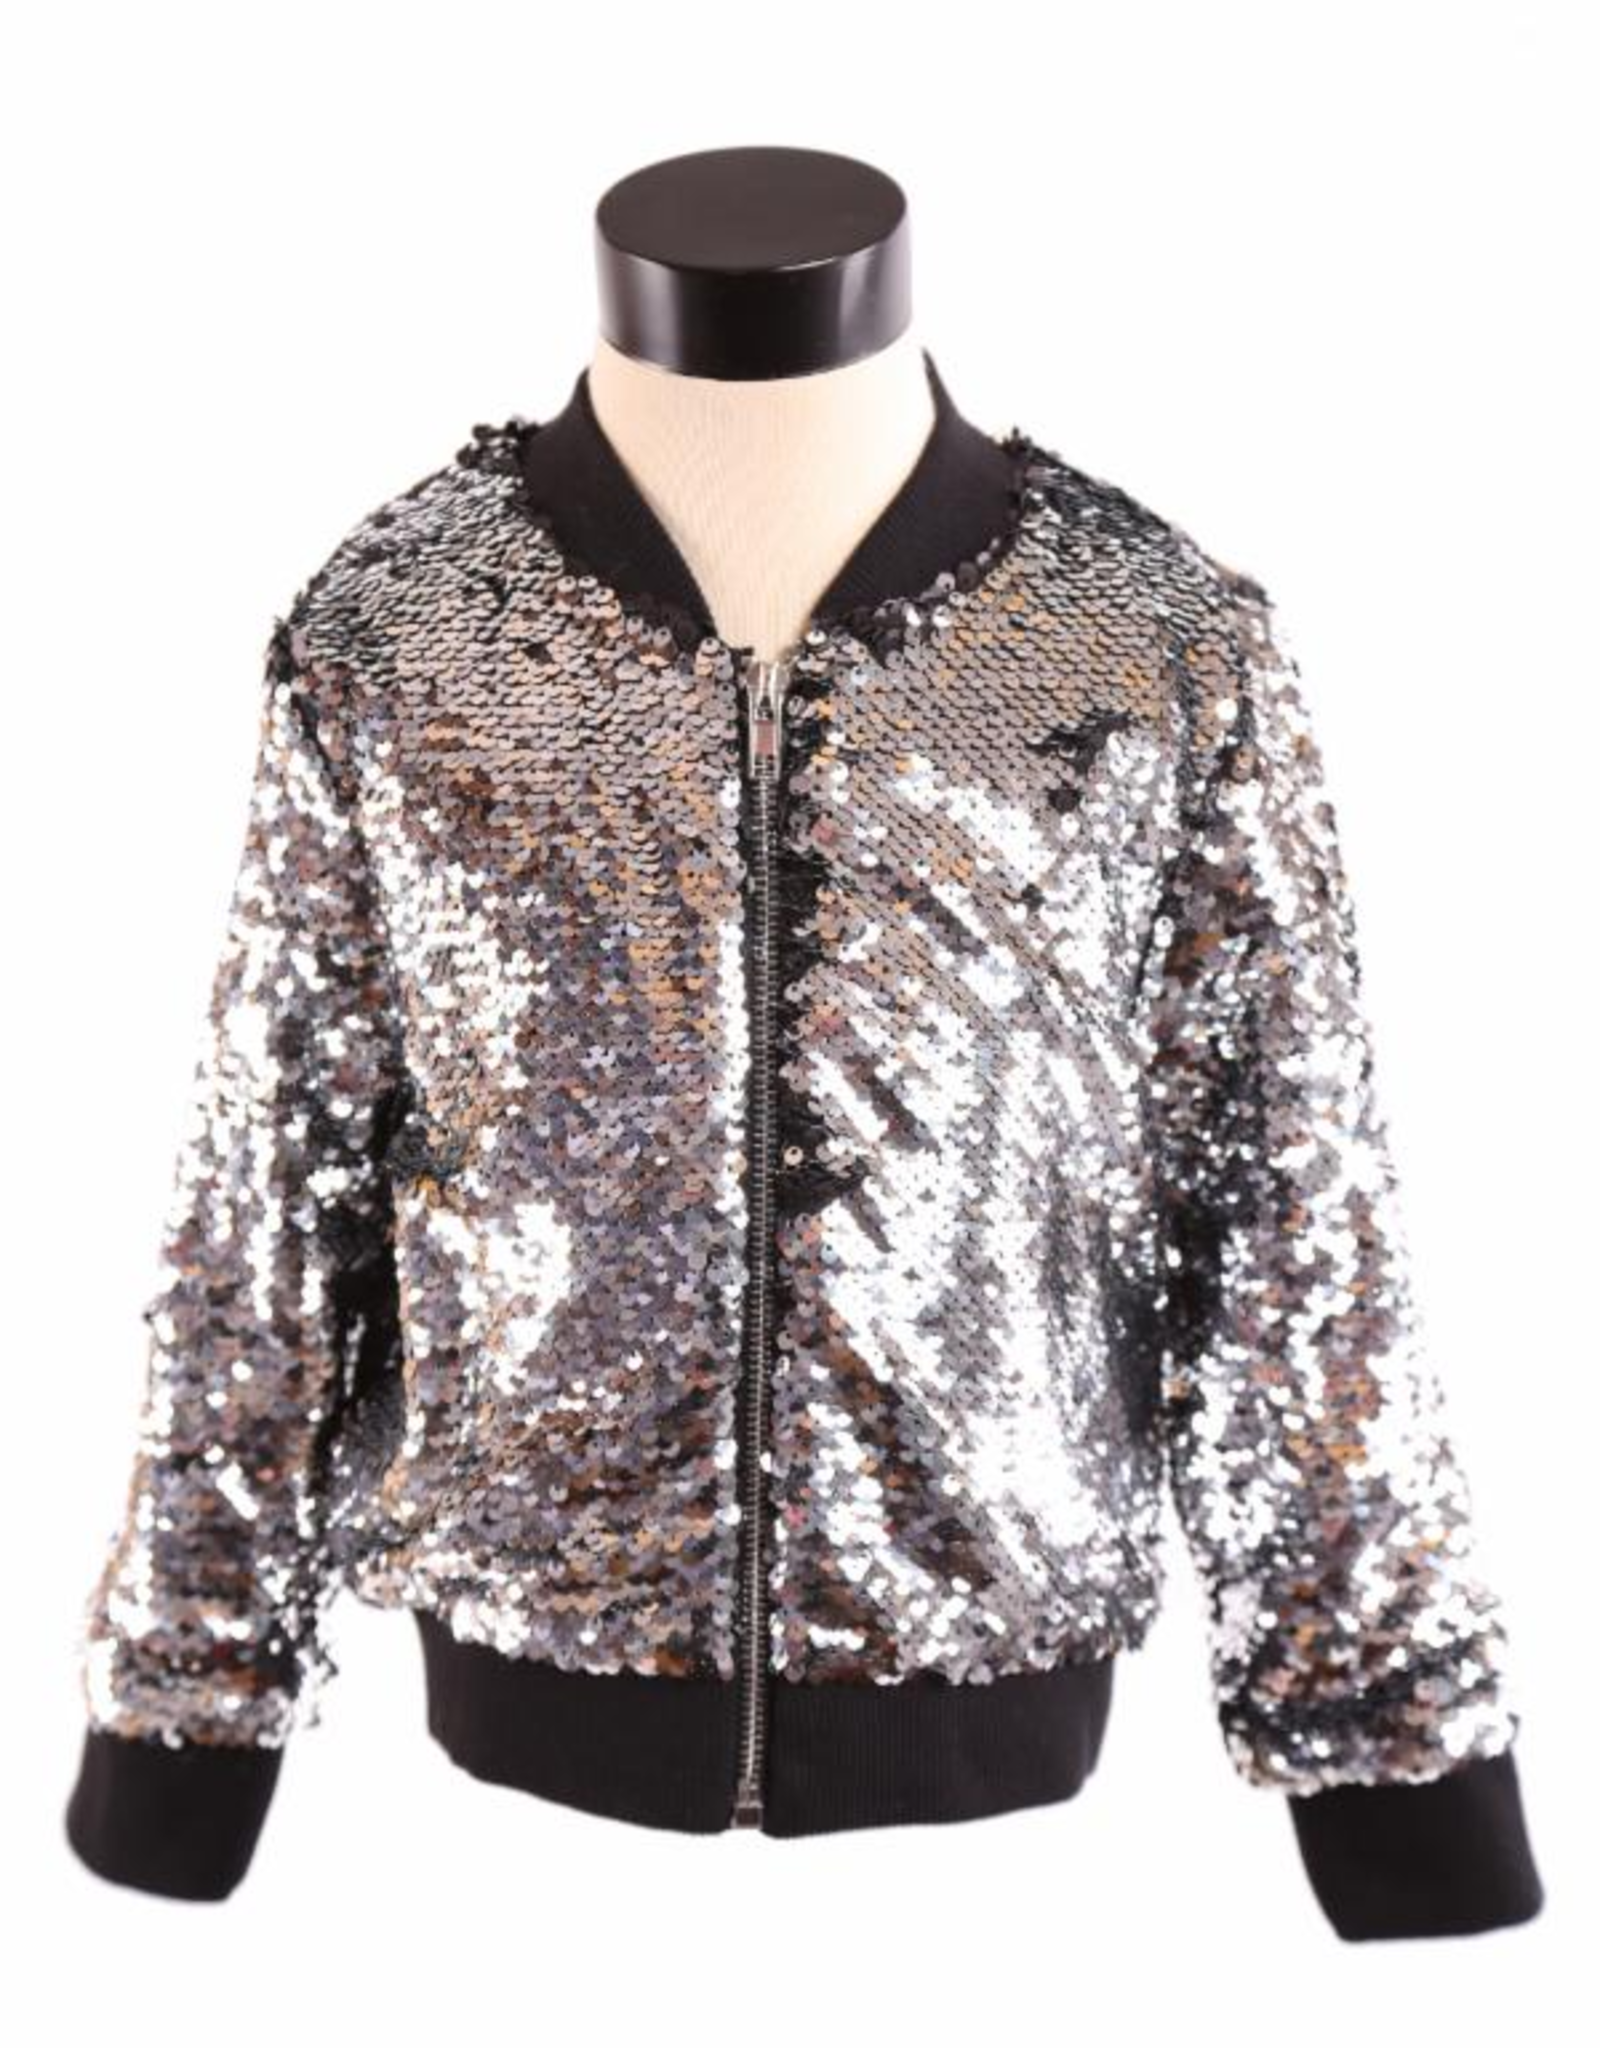 Doe a Dear L/S Allover Sequin Zip-Up Jacket Silver